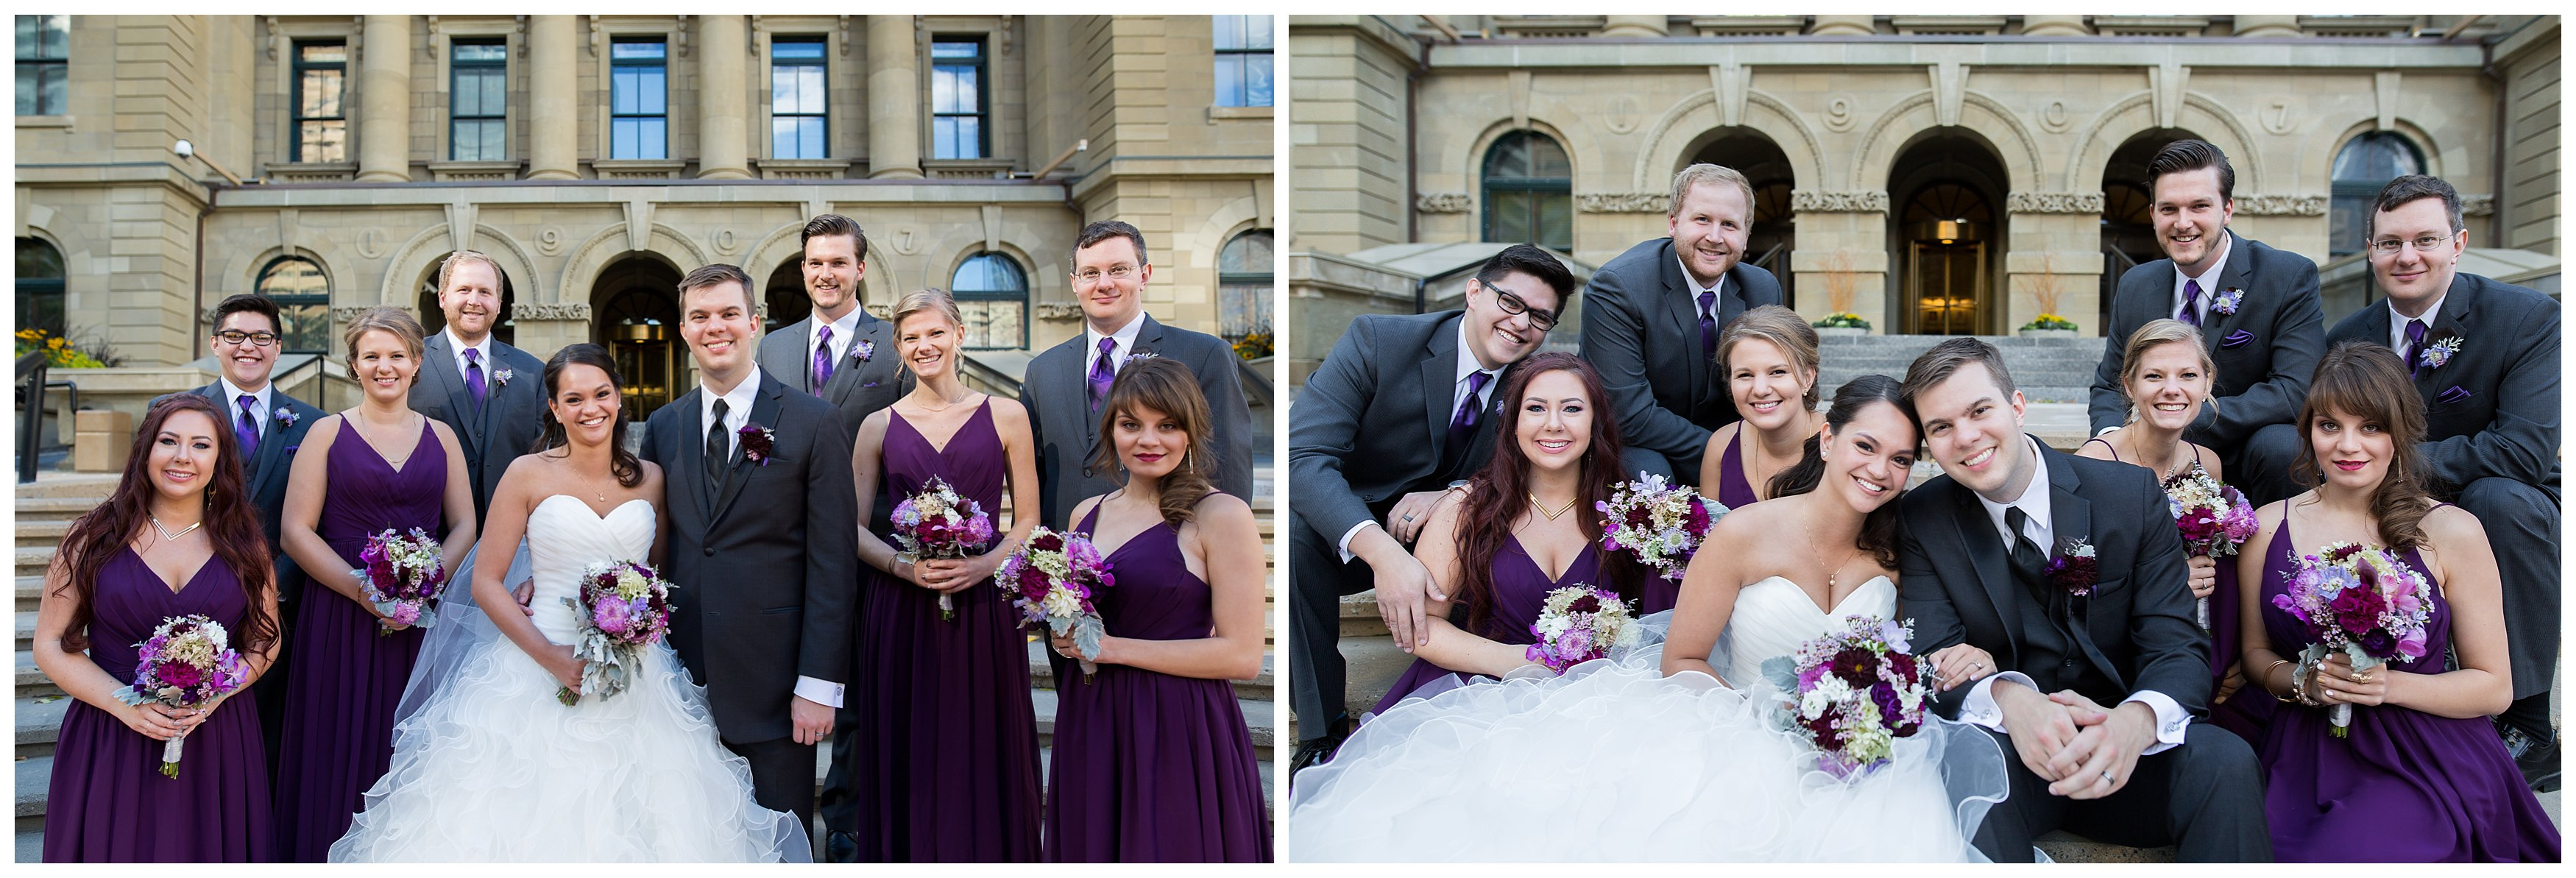 Calgary Wedding Photographer - Emily Exon_4899